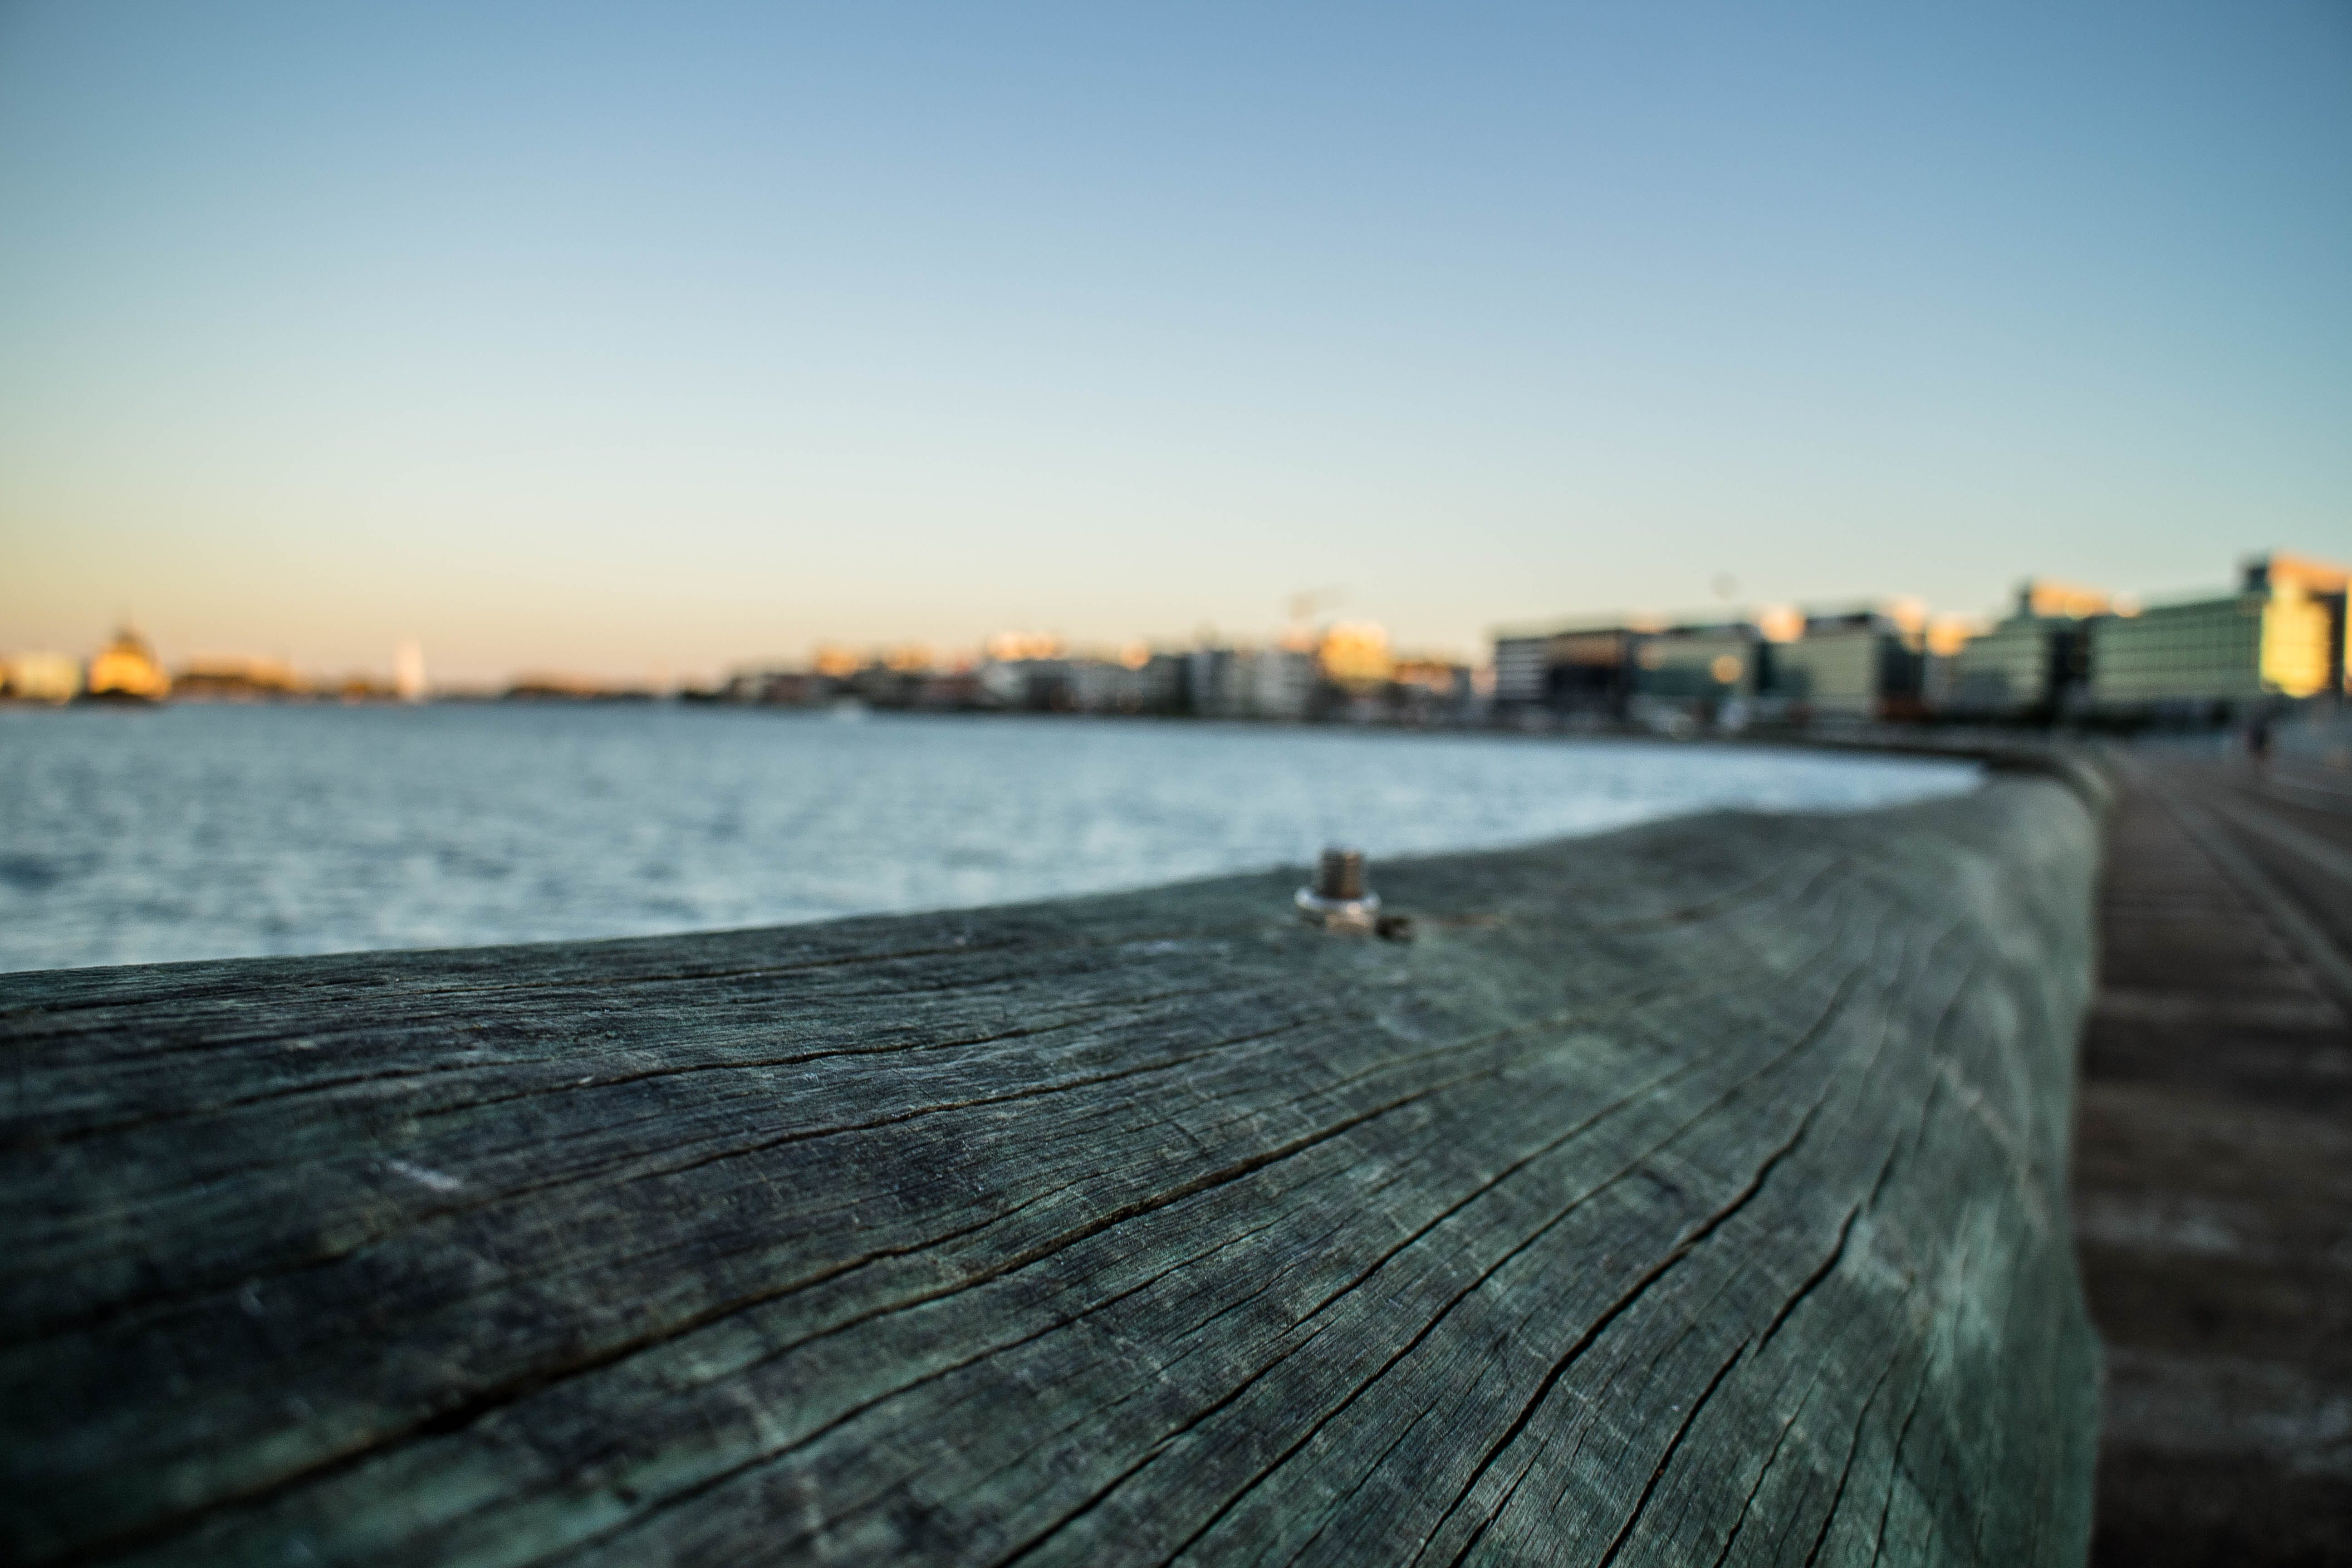 Brown Wooden Rails Overlooking City Skyline and Body of Water